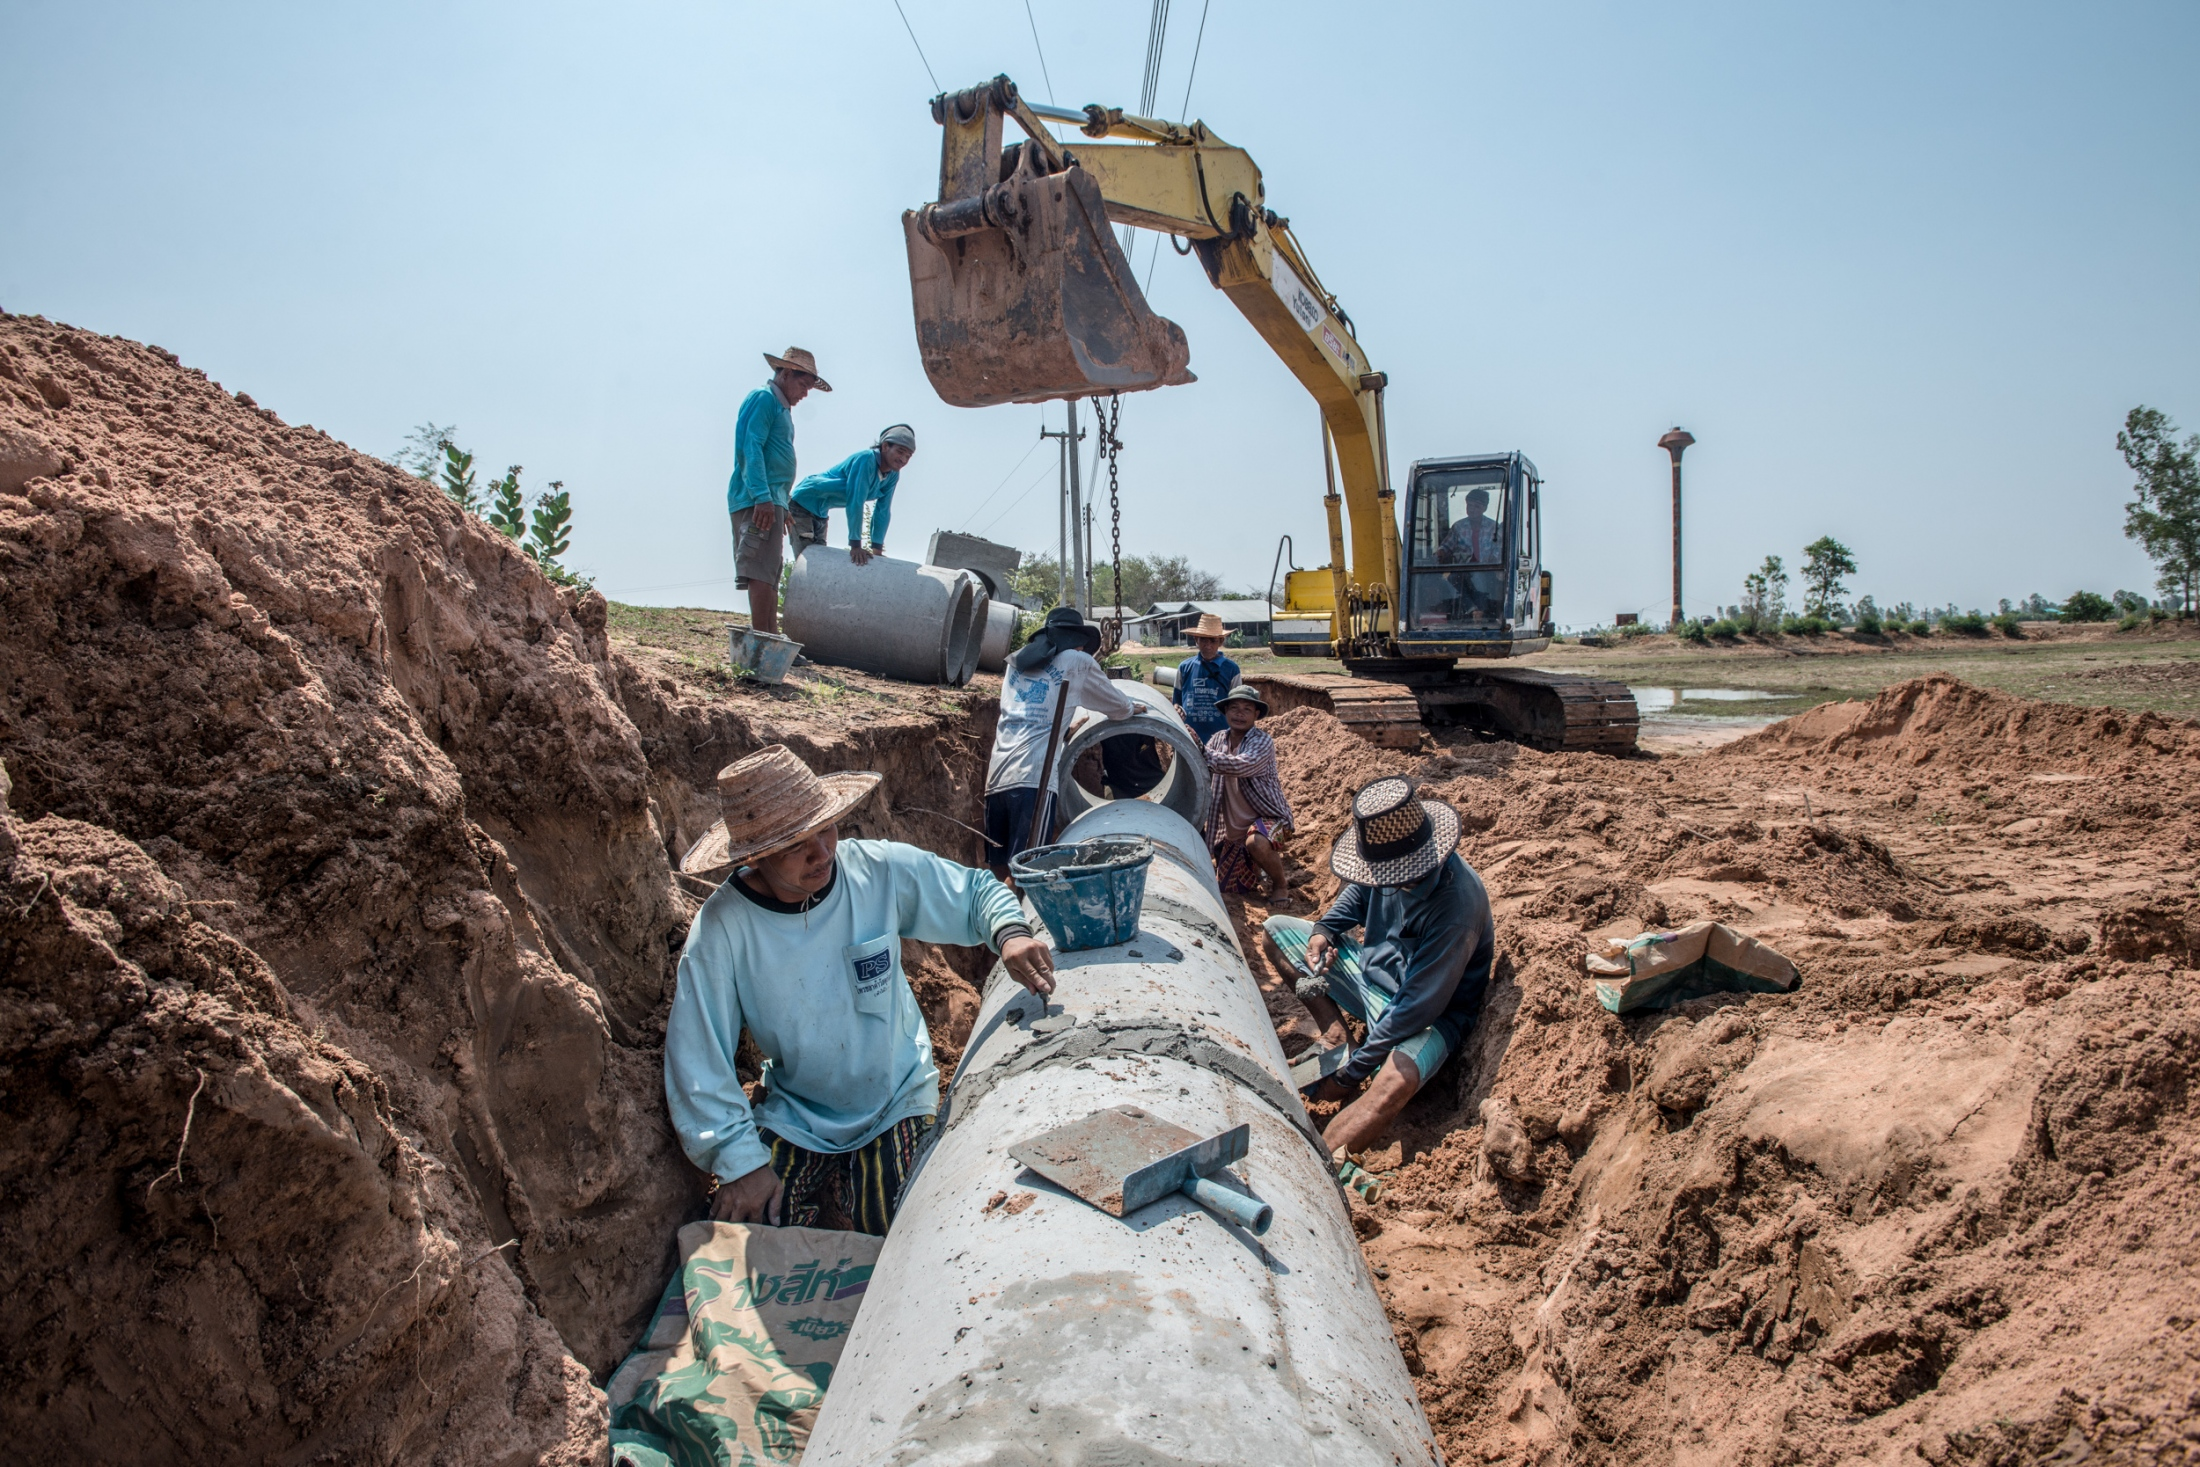 Construction workers are placing water pipe commuting fresh water to villages that have been affected by the extended drought in the heavy drought period. May 6, 2016.